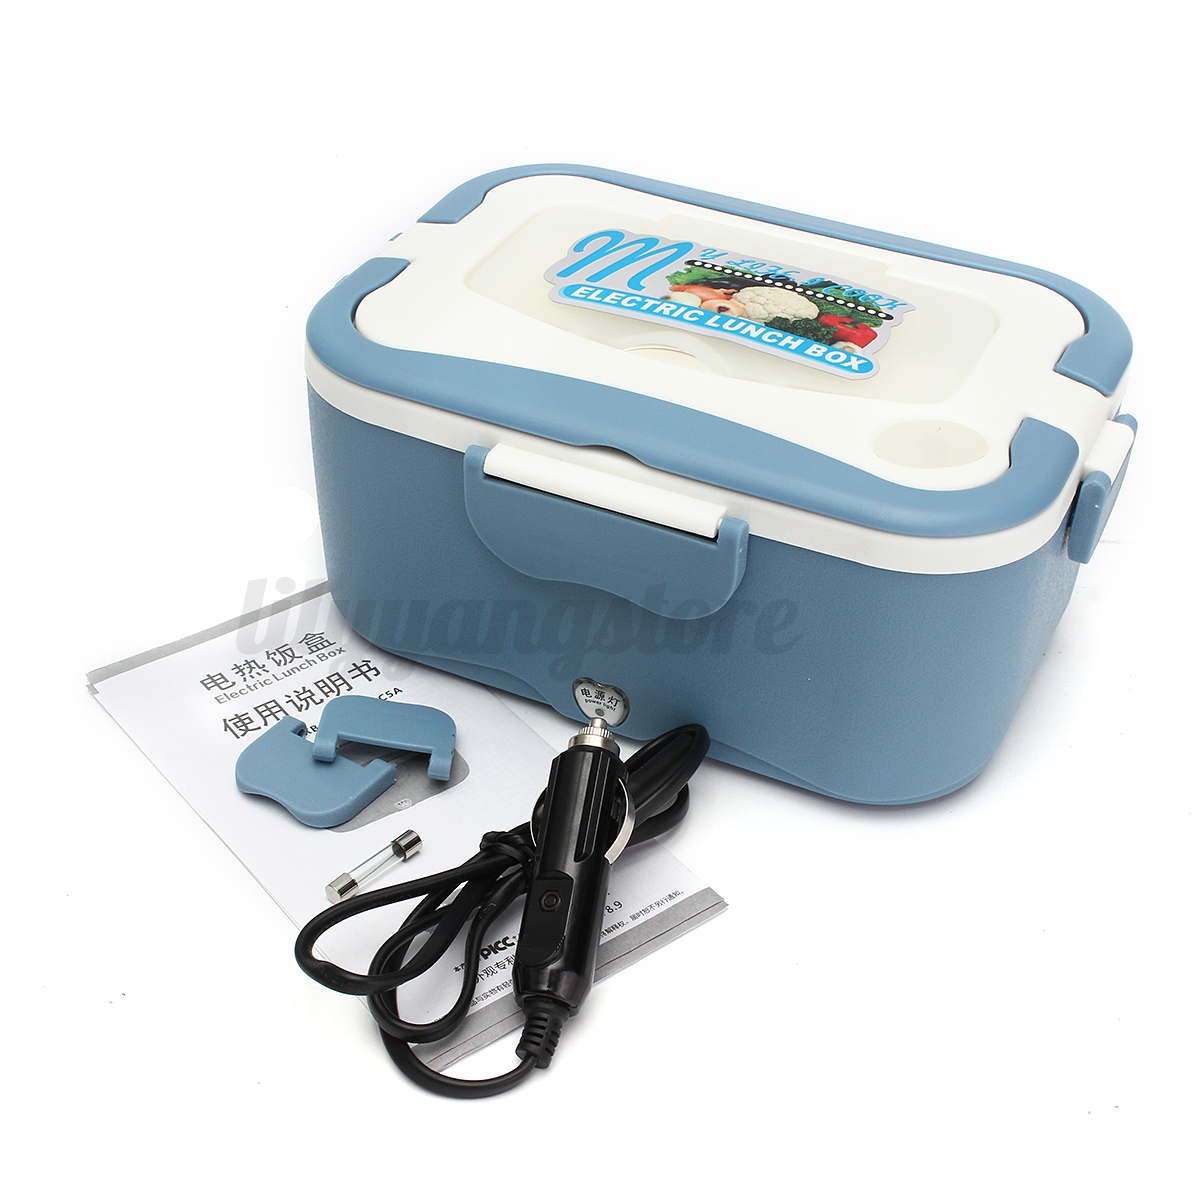 Portable 1.5L Car Plug Electric Heating Lunch Box Food